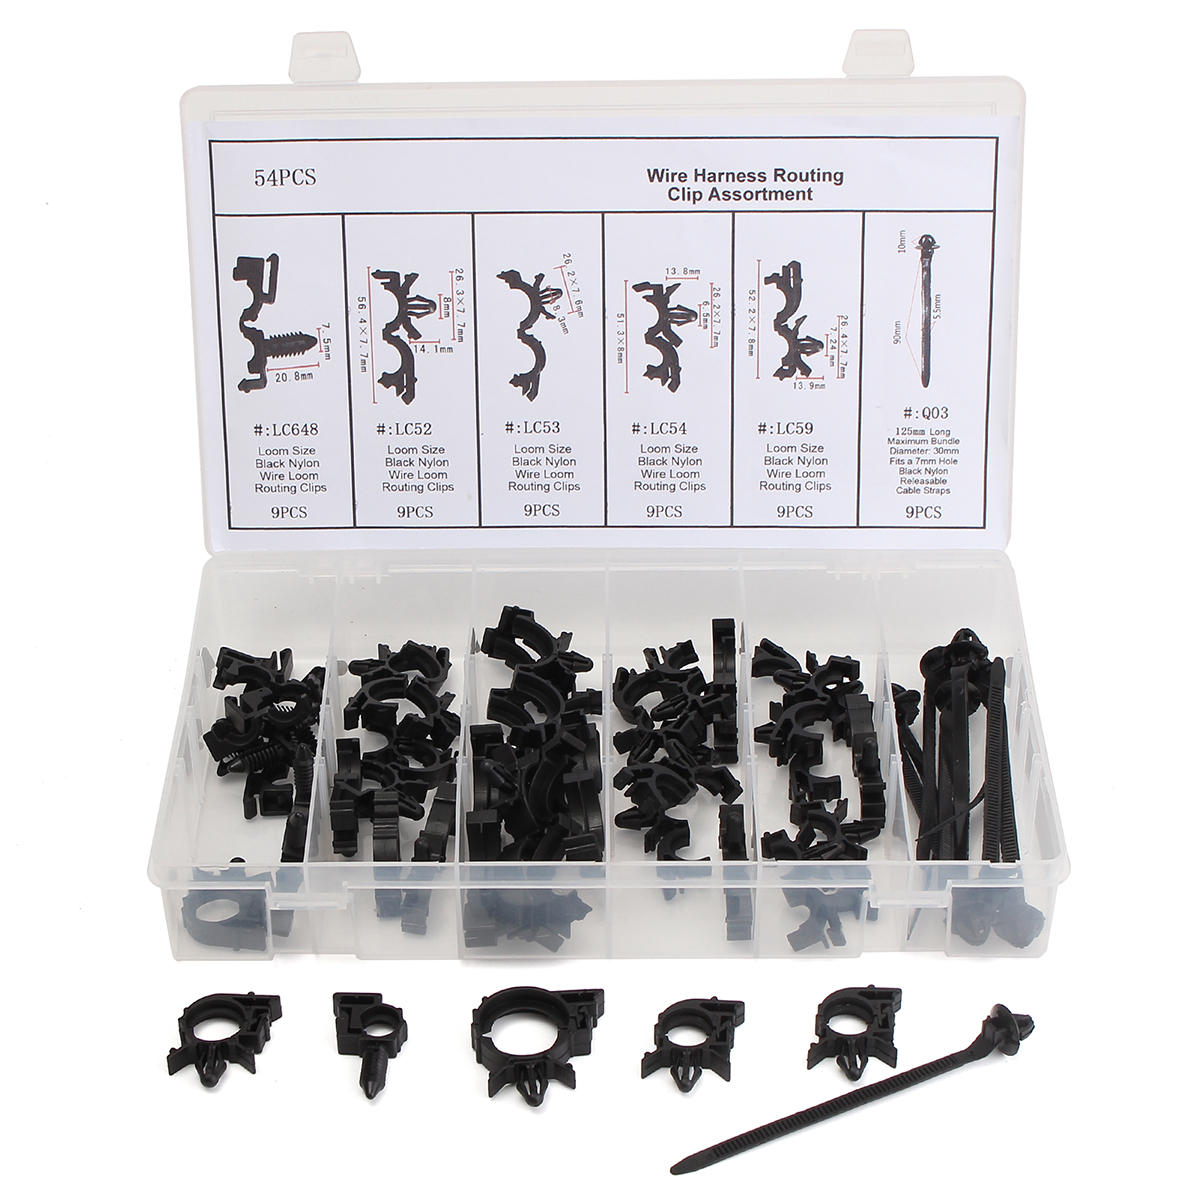 hight resolution of 54pcs wiring harness routing convoluted conduit clip assortment with box cod